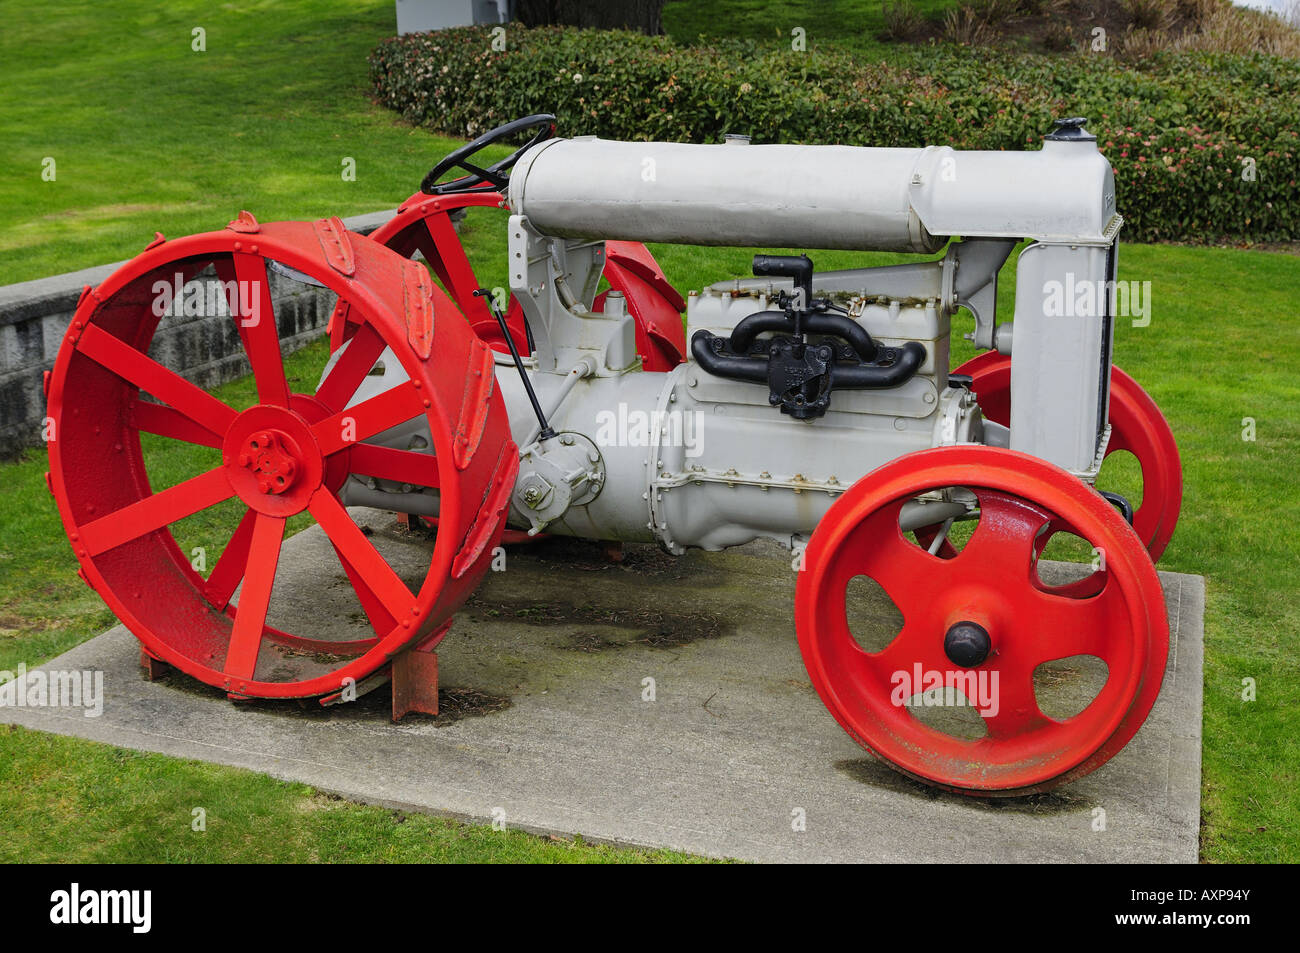 Fordson Model F Tractor Circa 1923 Stock Photo, Royalty Free Image: 16893578 - Alamy